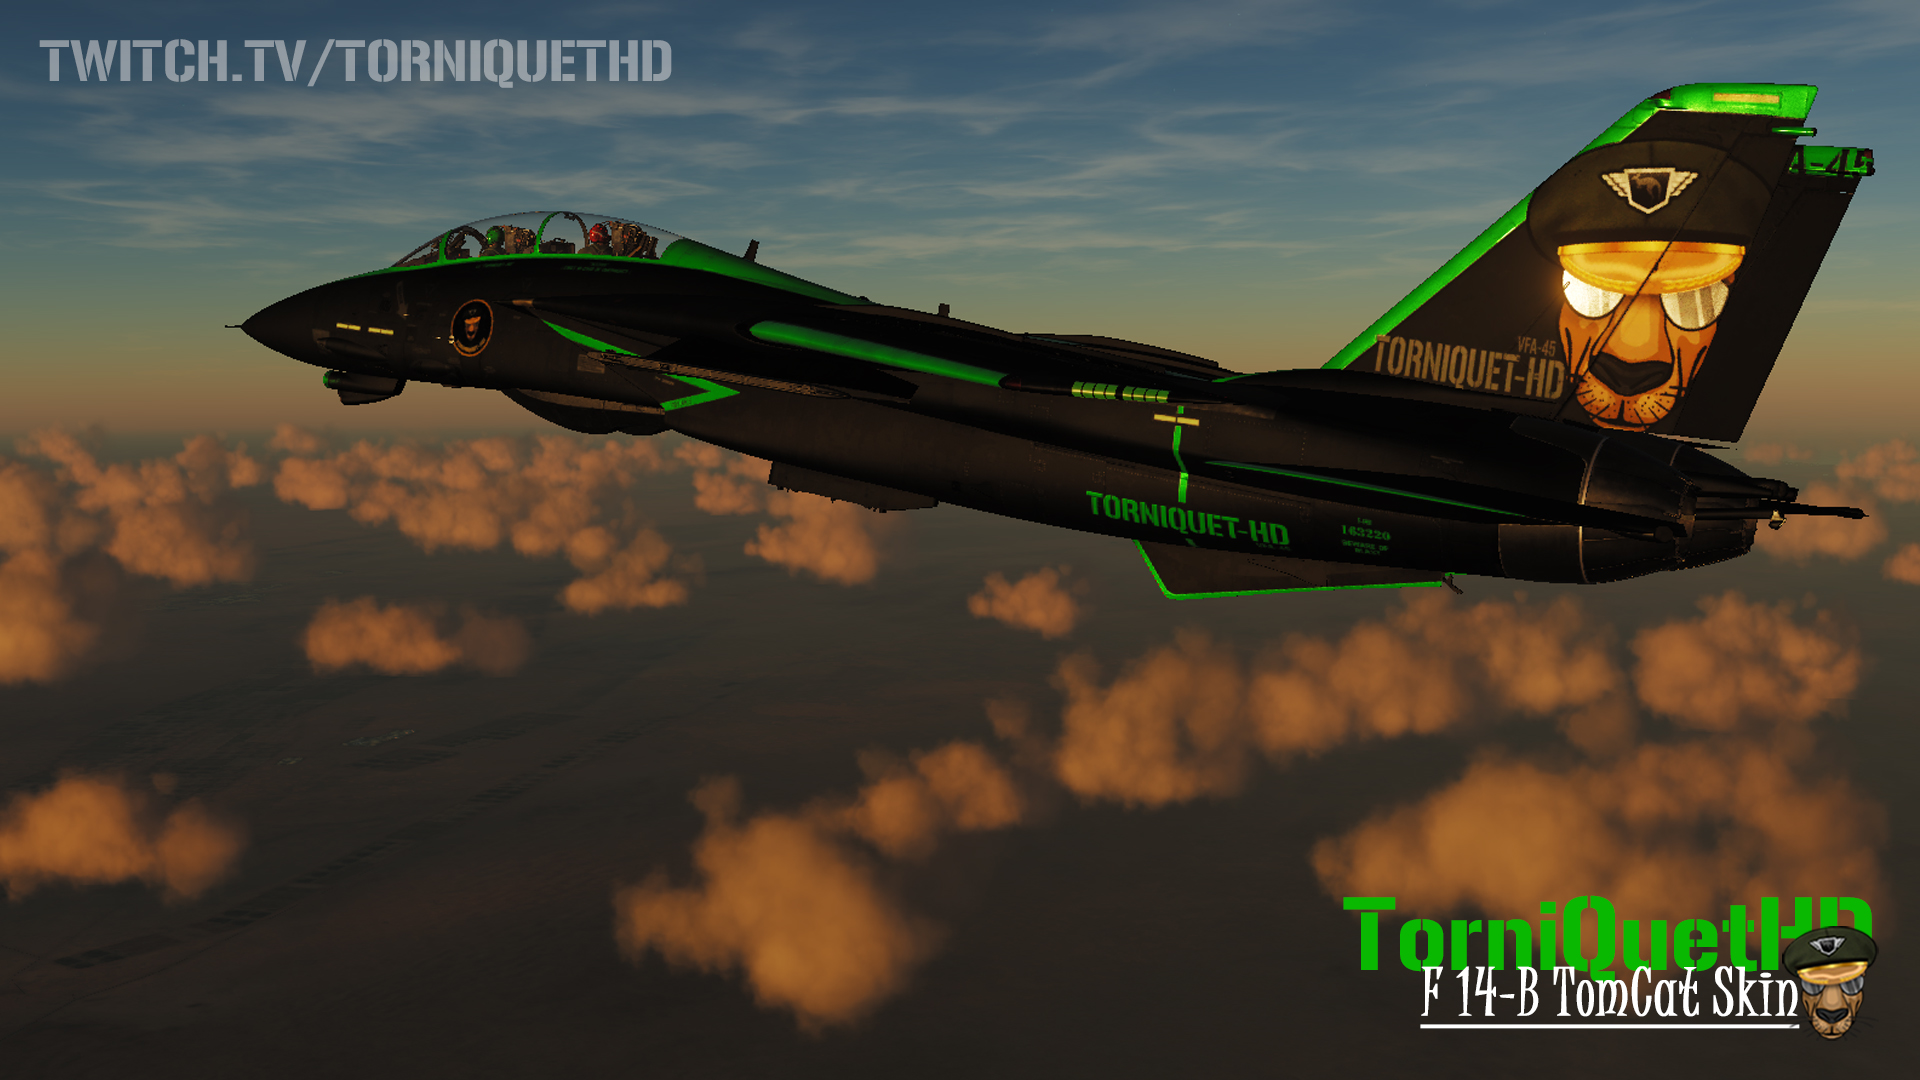 The Official TorniQuet-HD F-14B Skin V3.0